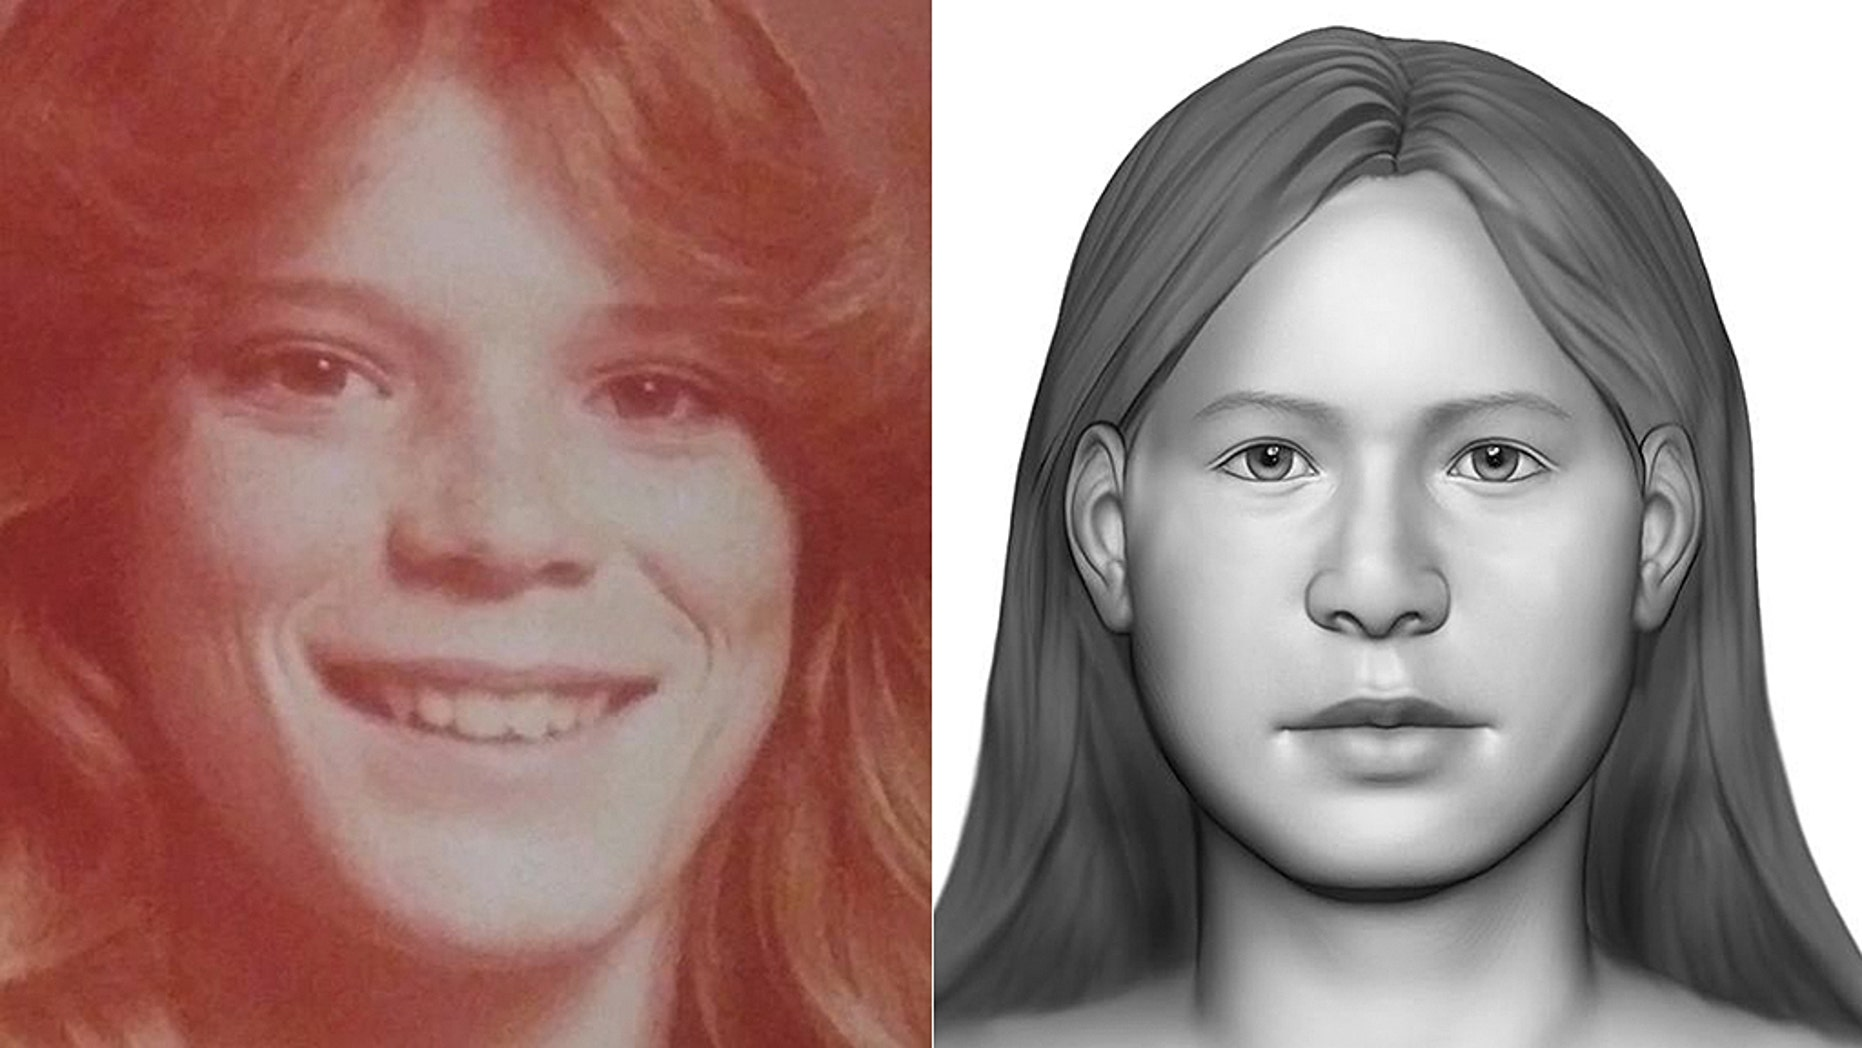 Tracey Hobson, seen here, was 20 years old and living in Anaheim, Calif., when she disappeared 31 years ago. Remains found two months after her disappearance were identified as Hobson through DNA and forensic genealogy. Investigators trying to identify the remains released this composite image in 2017.